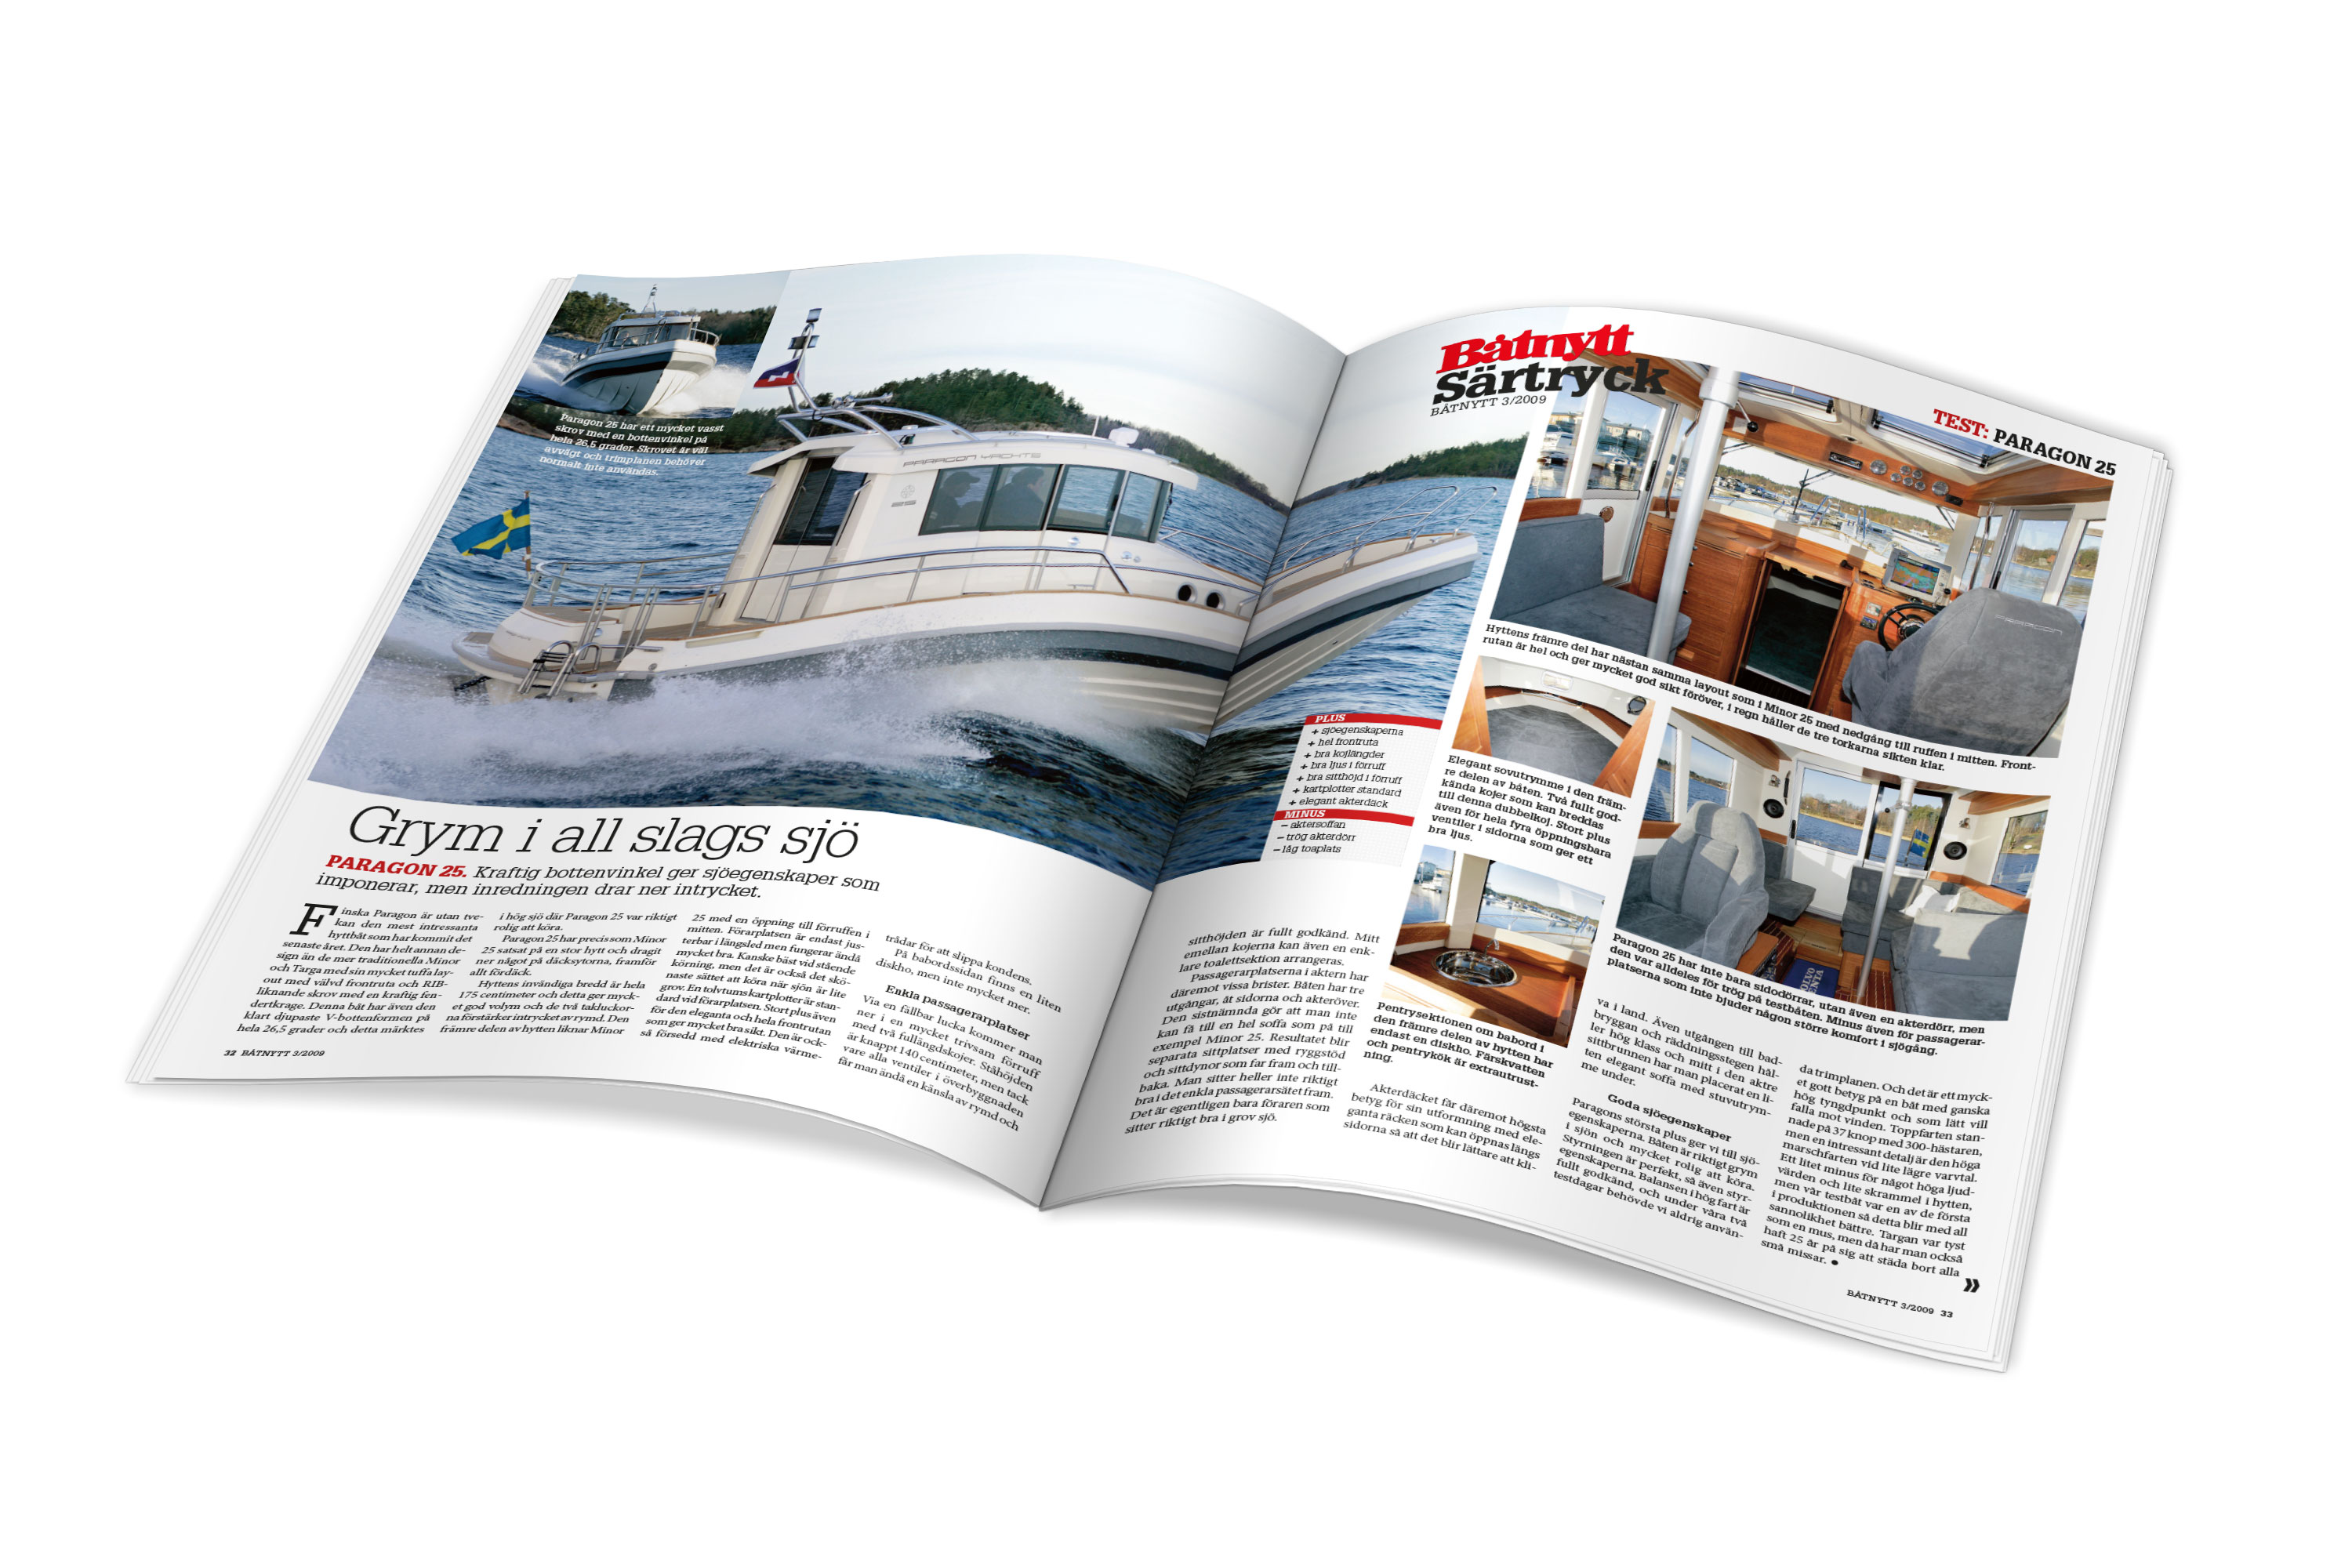 Article in a newspaper about Paragon 25 with text and pictures of the boat